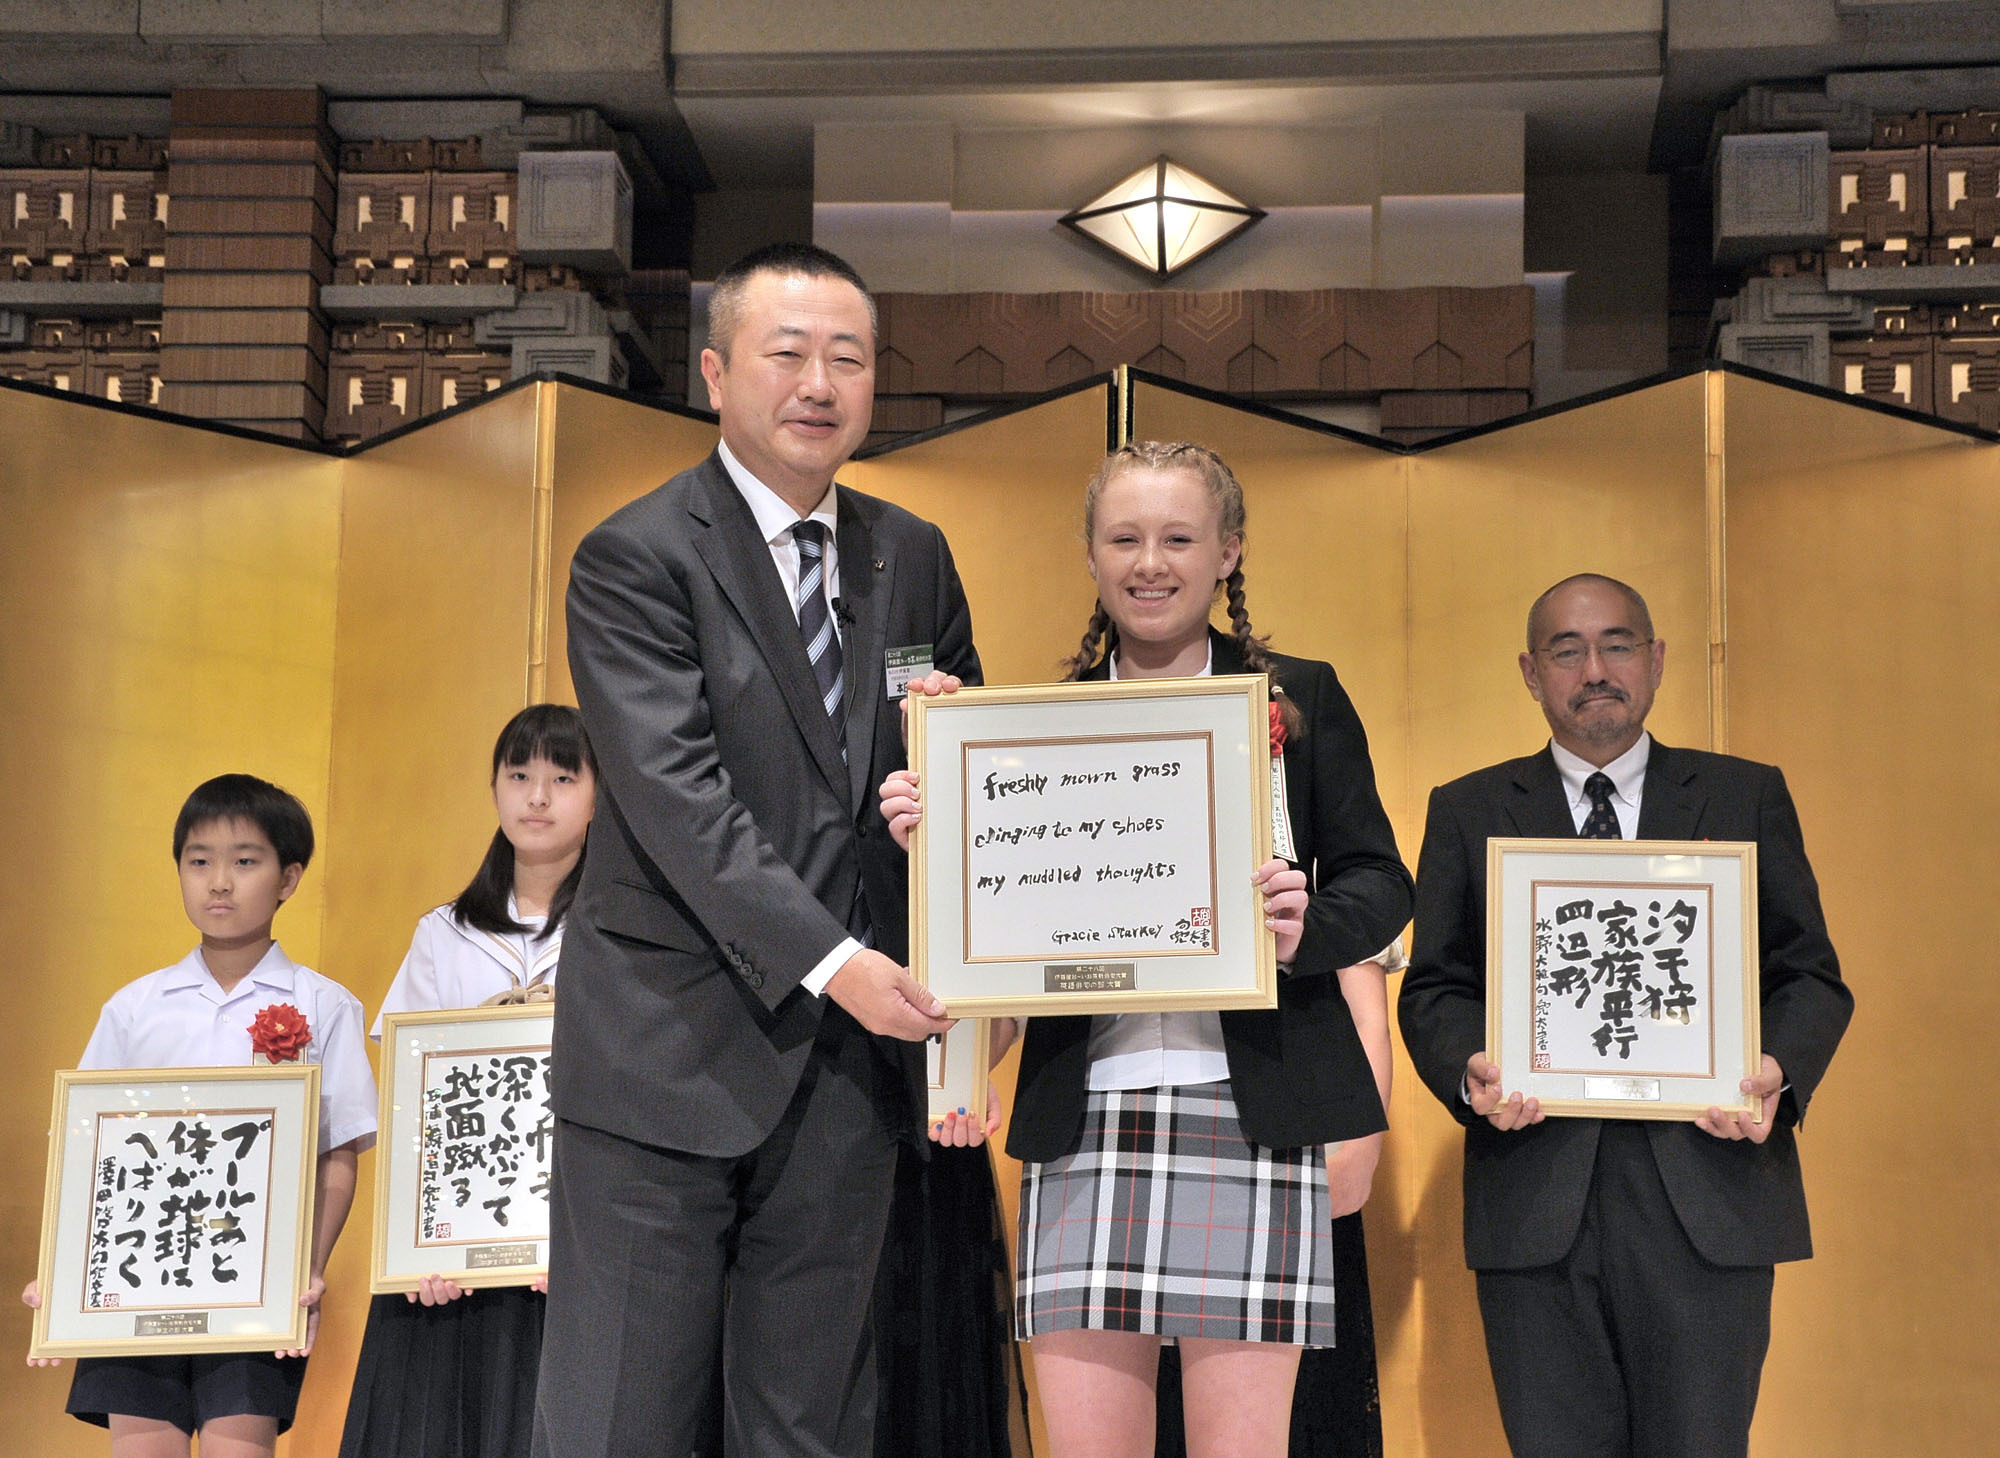 """Thirteen-year-old Briton Gracie Starkey receives a framed copy of her winning poem in the English haiku category (""""Freshly mown grass/ clinging to my shoes/ my muddled thoughts"""") from Itoen President Daisuke Honjo at the 28th Itoen Oi Ocha New Haiku Contest at Imperial Hotel Tokyo on July 6. 